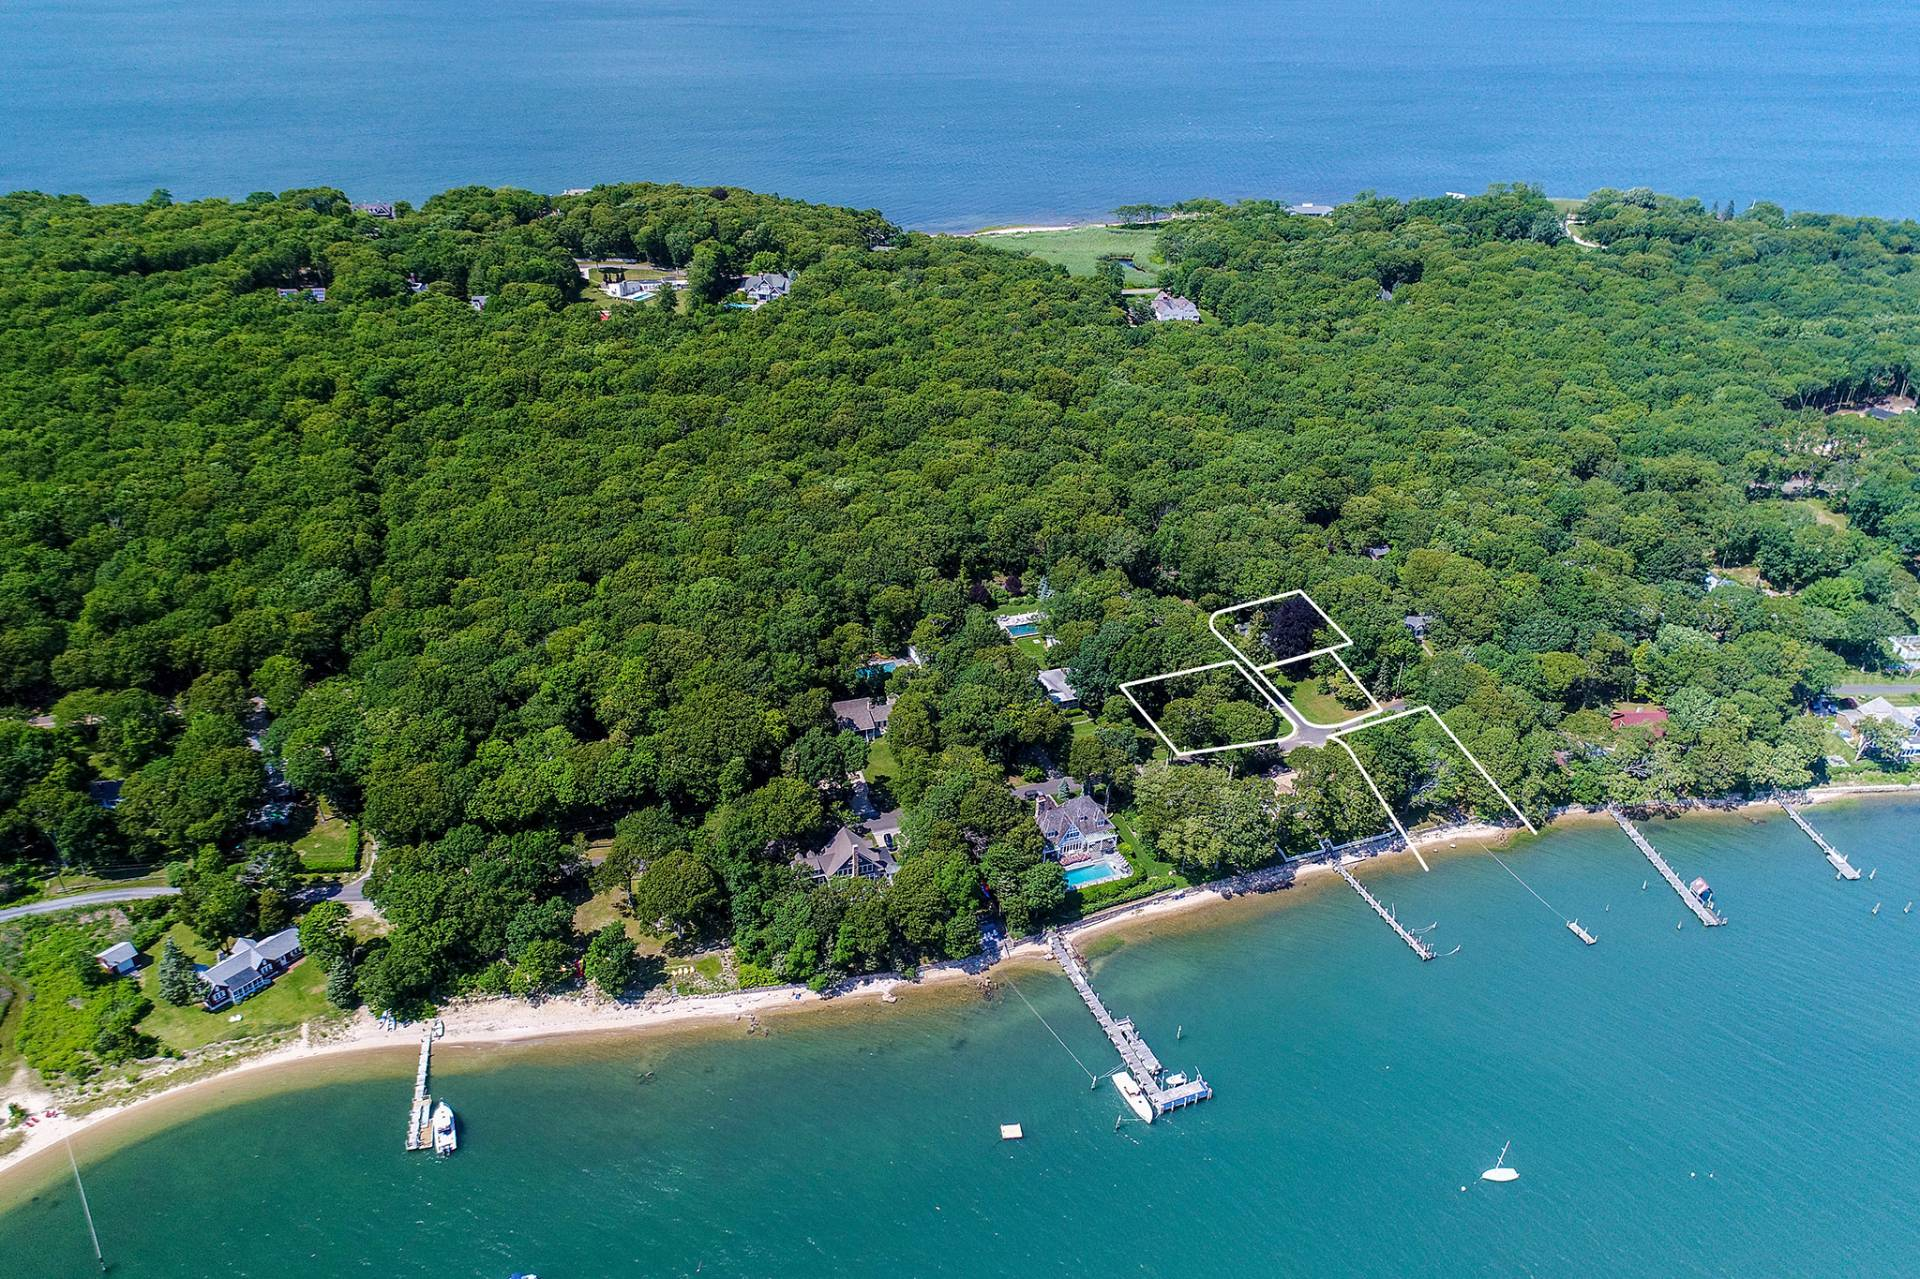 Single Family Home for Sale at Shelter Island Harbor Front Cape With Guest House 58 Tuthill Drive + 43, 45, 64 Myrtle Road, Shelter Island, New York